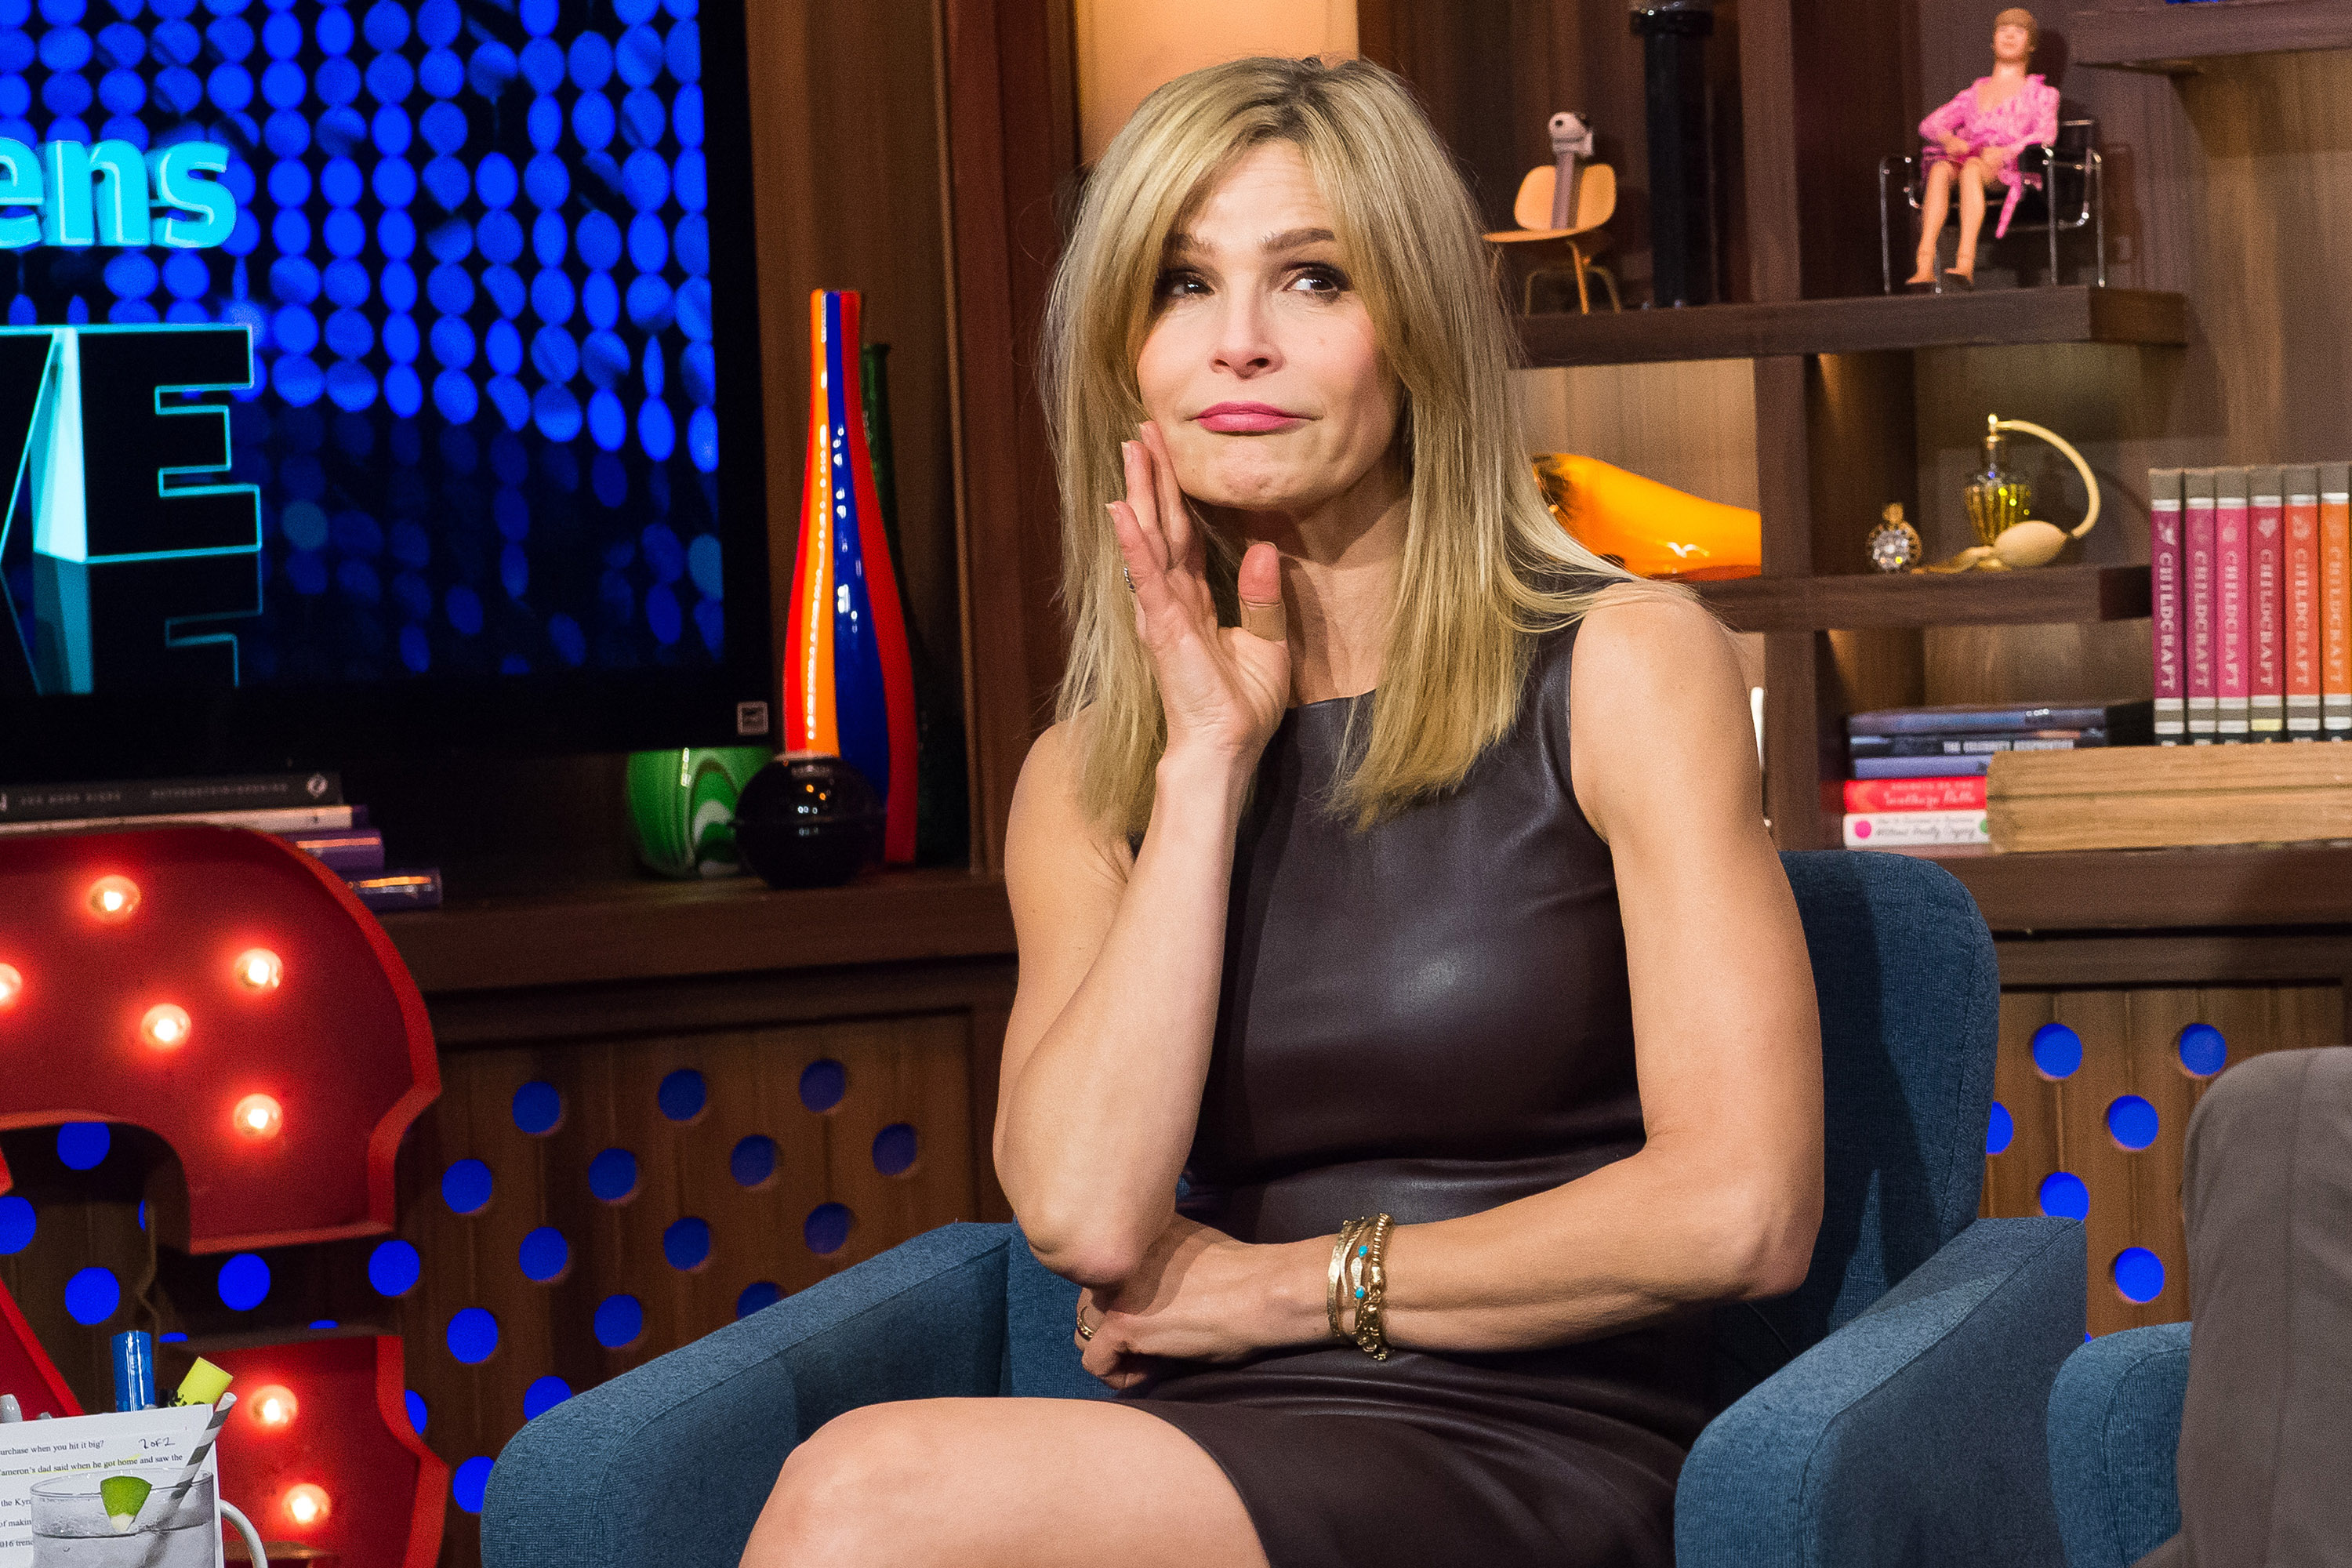 kyra sedgwick and matthew broderick reveal they dated in